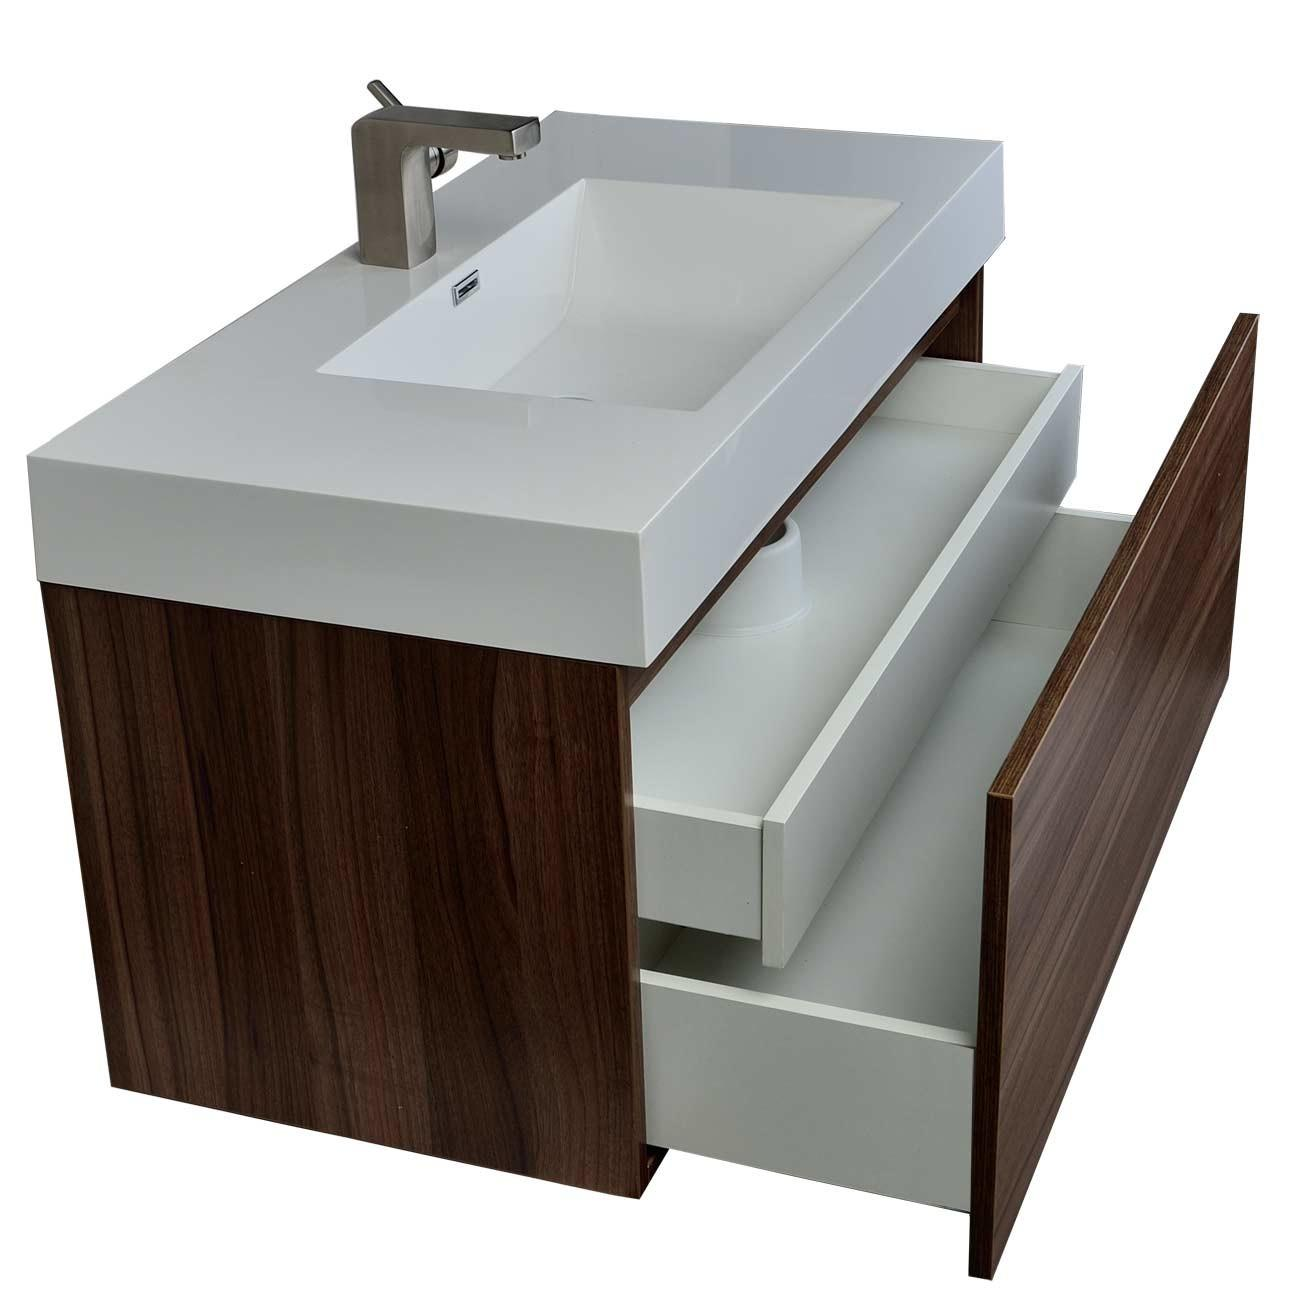 Modern Bathroom Vanity Walnut Finish A1000